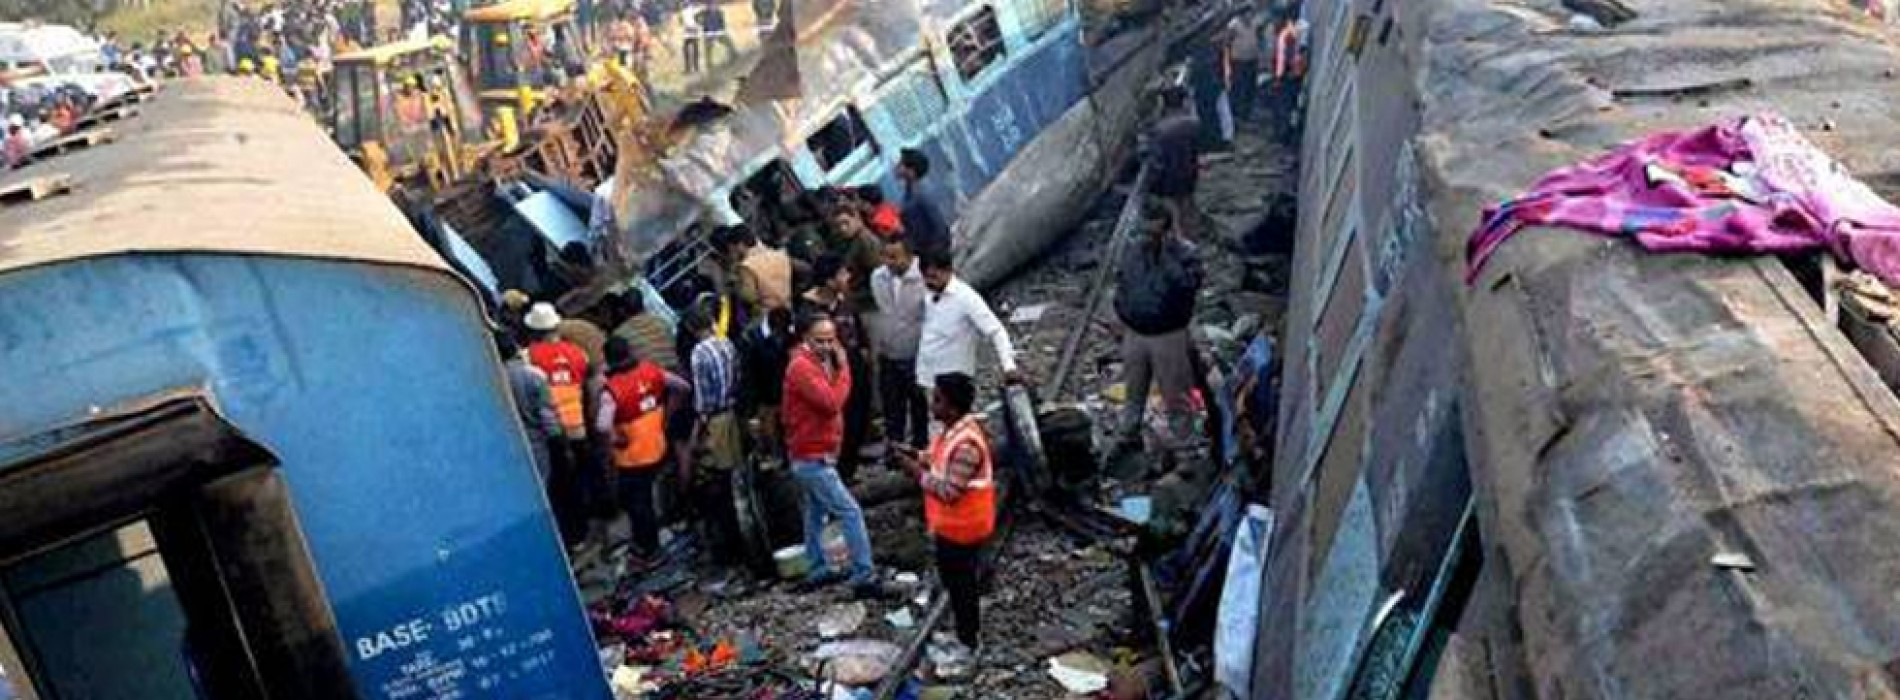 Pakistan's link unearthed in Kanpur train accident that killed more than 140 passengers, 3 arrested